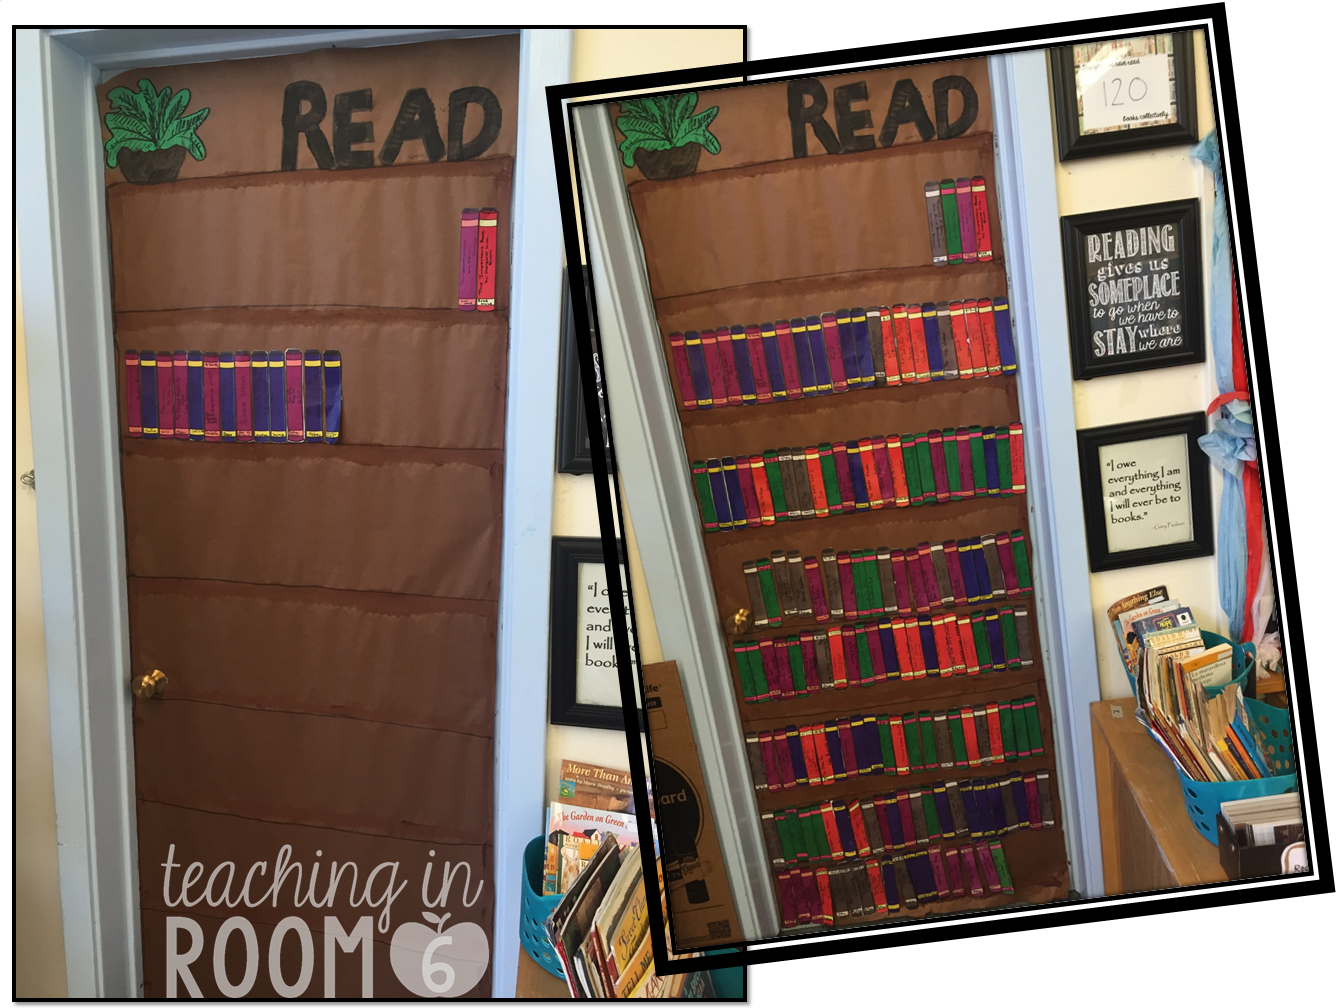 Book Display Door - Ways to Share What Students Are Reading